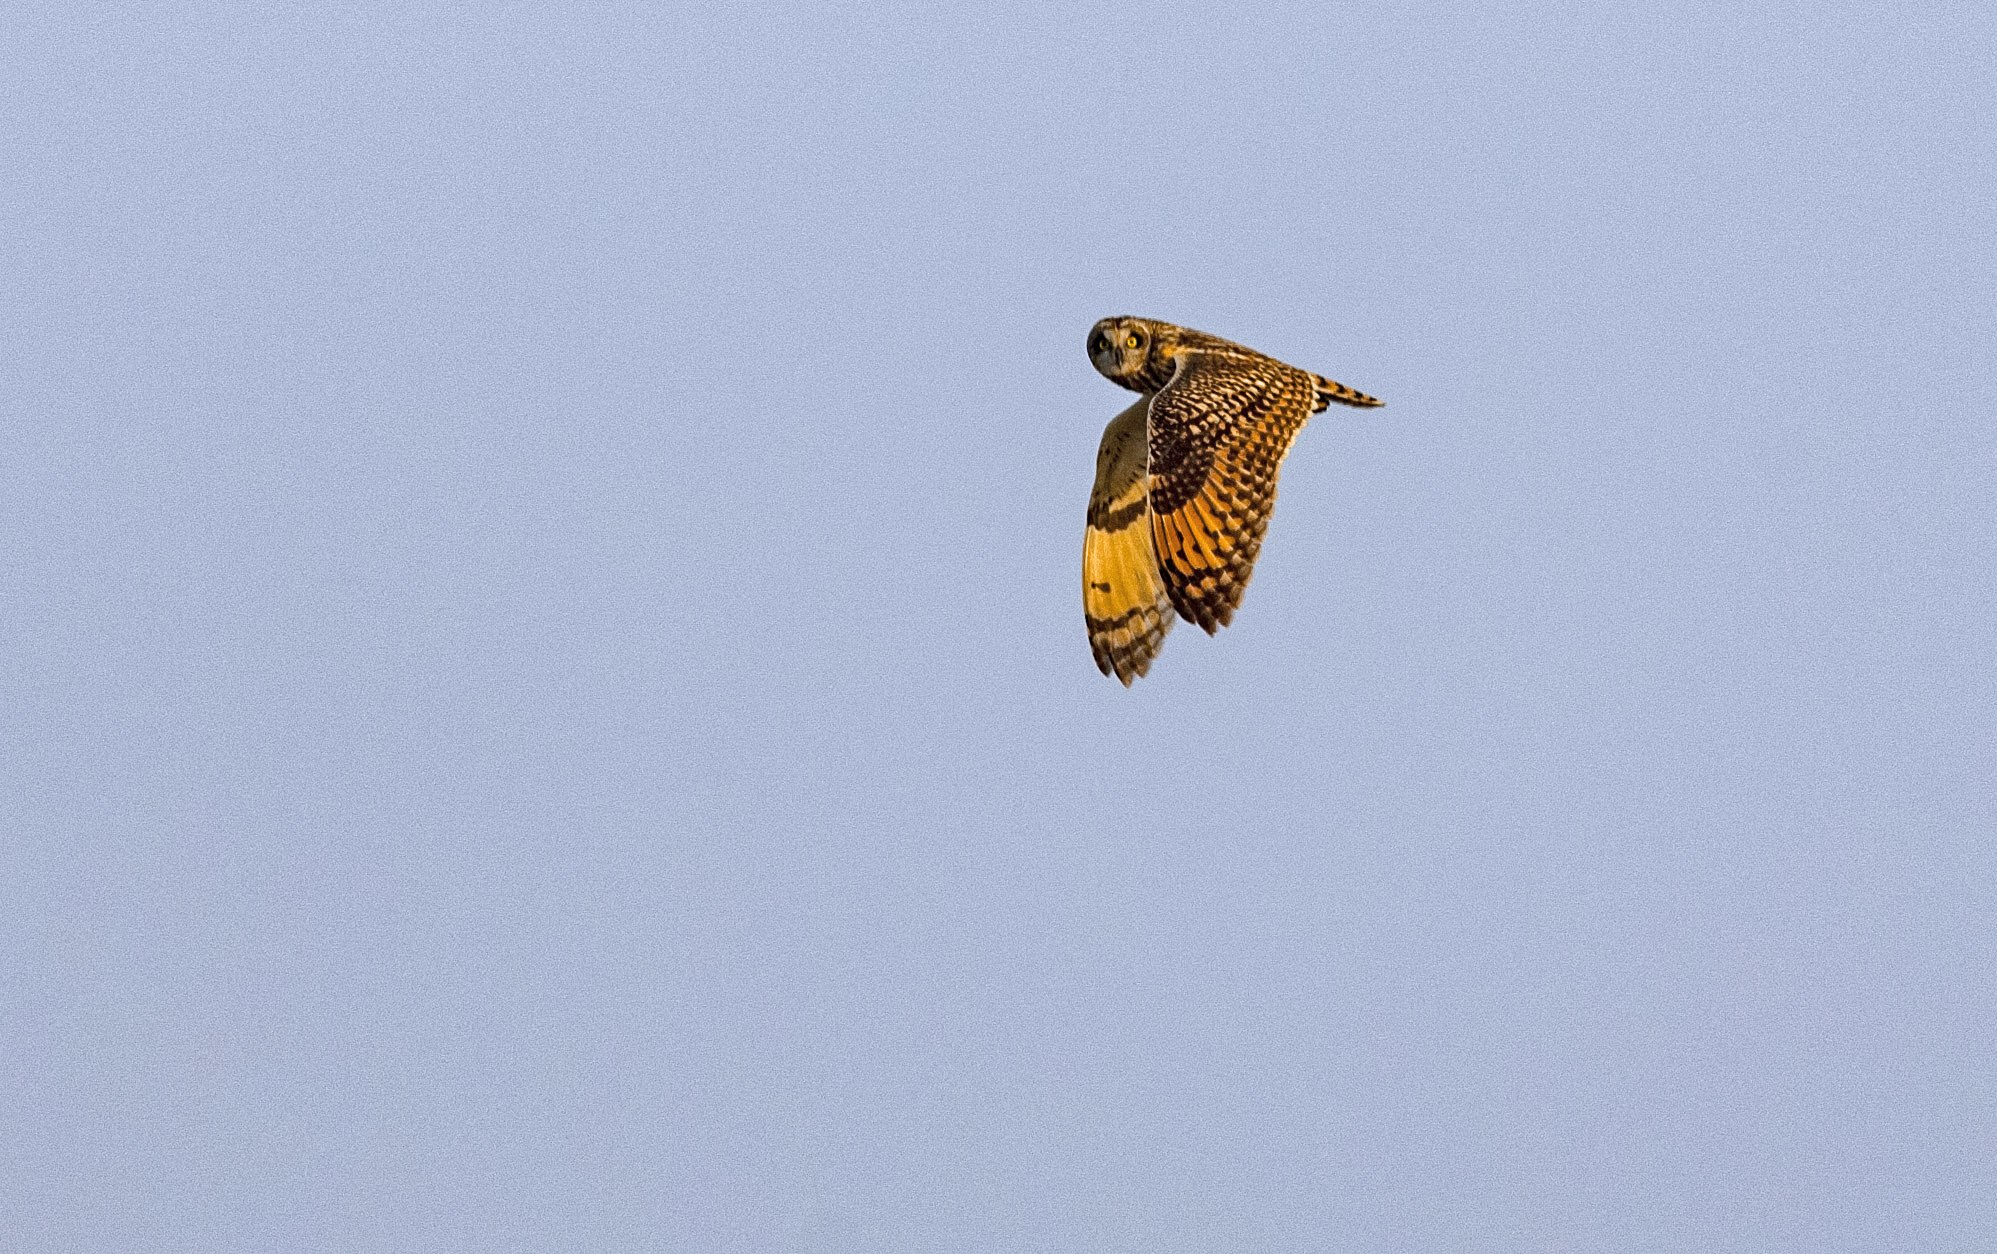 A short-eared owl is a diurnal bird with a wingspan of about a metre. It usually flies close to the ground as it hunts for prey, but flies higher when migrating, or displaying its aerial skills during courtship.